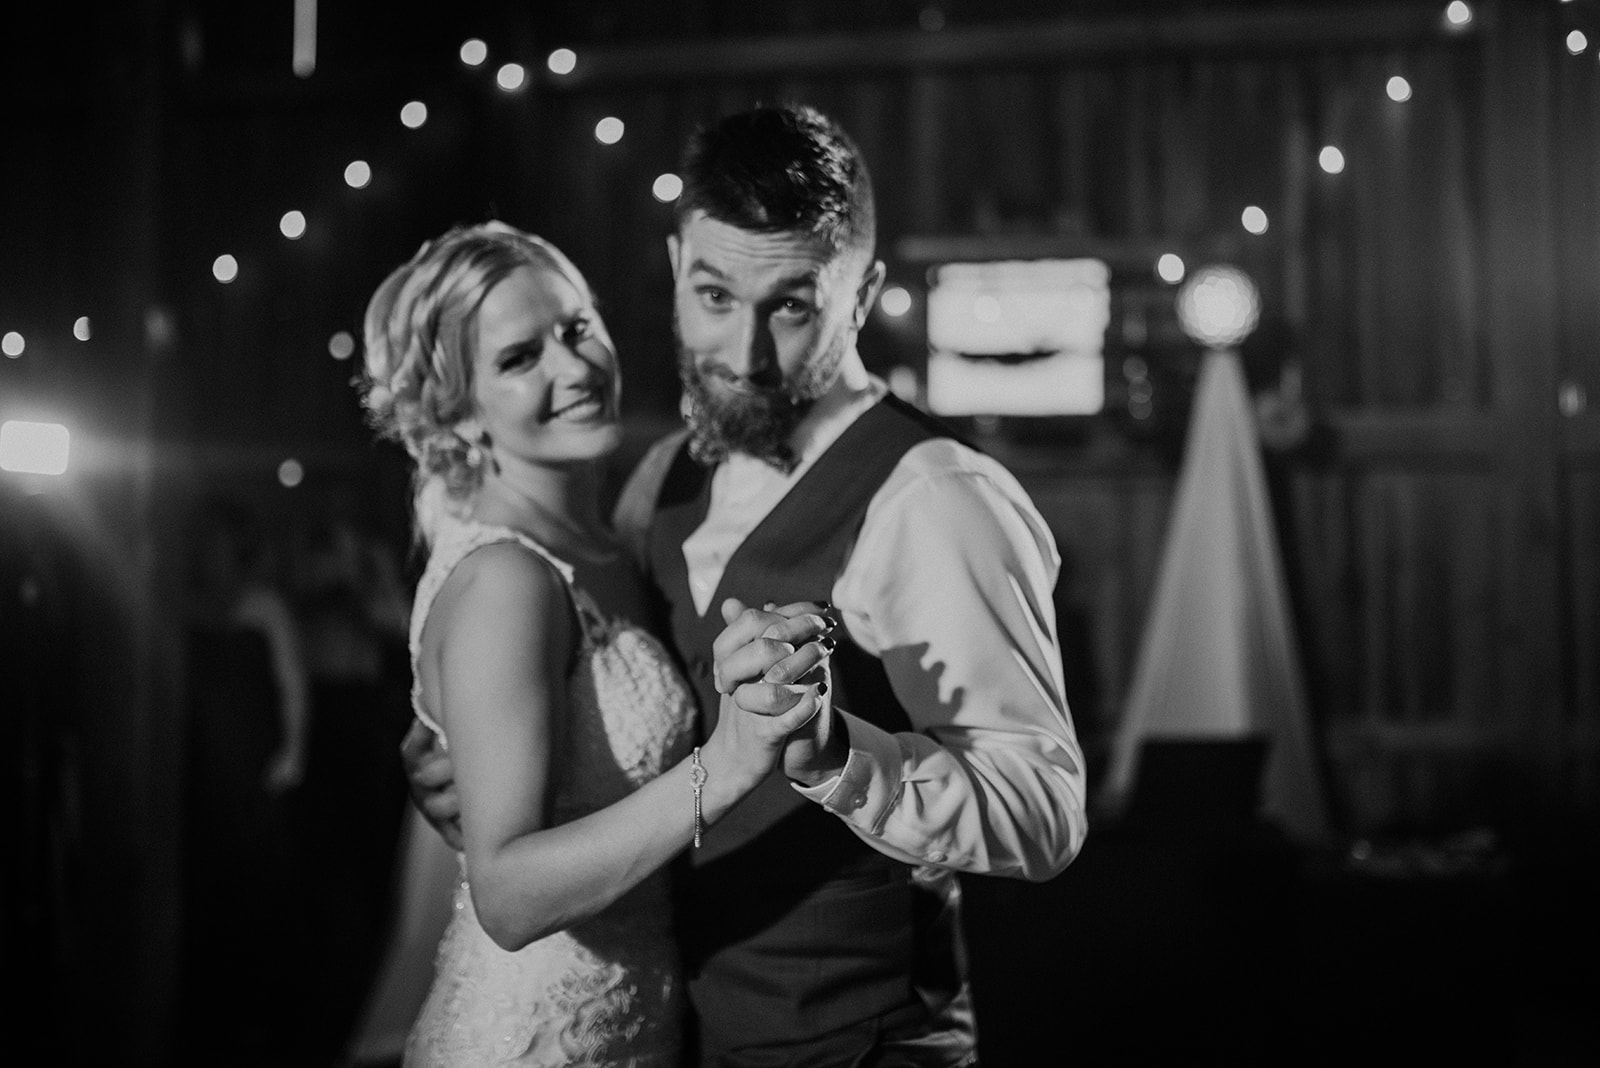 overthevineswisconsinwedding_1278.jpg